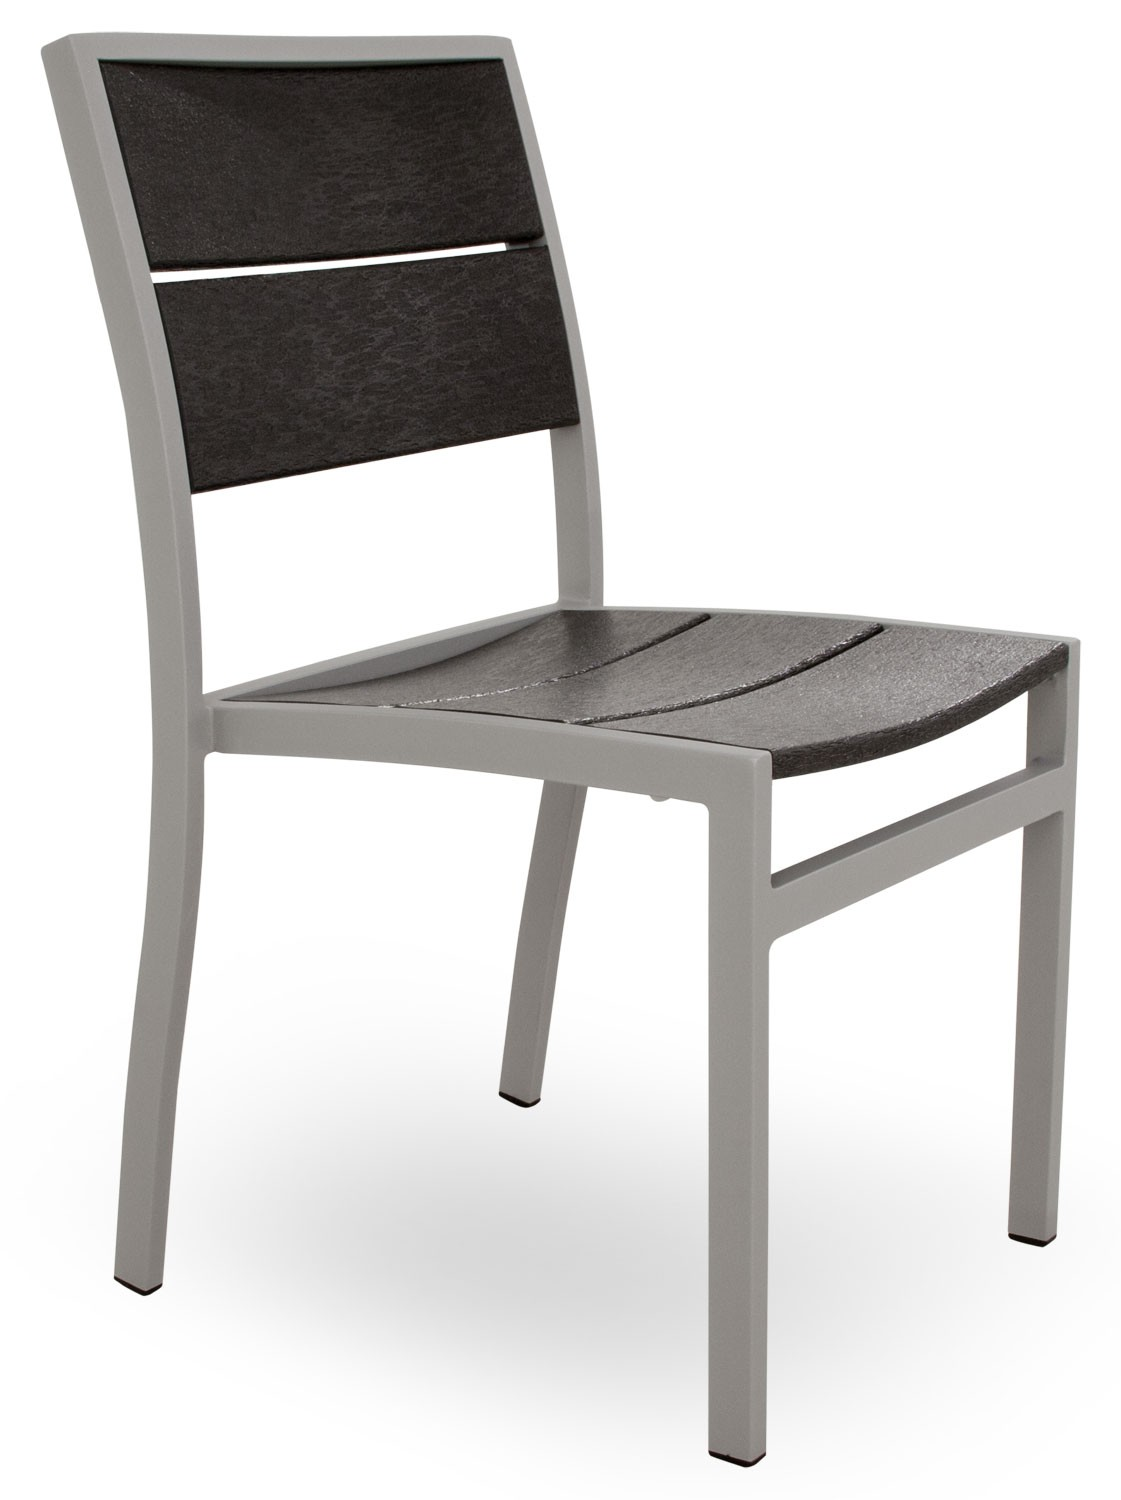 Trex� Outdoor Furniture� Surf City Dining Side Chair